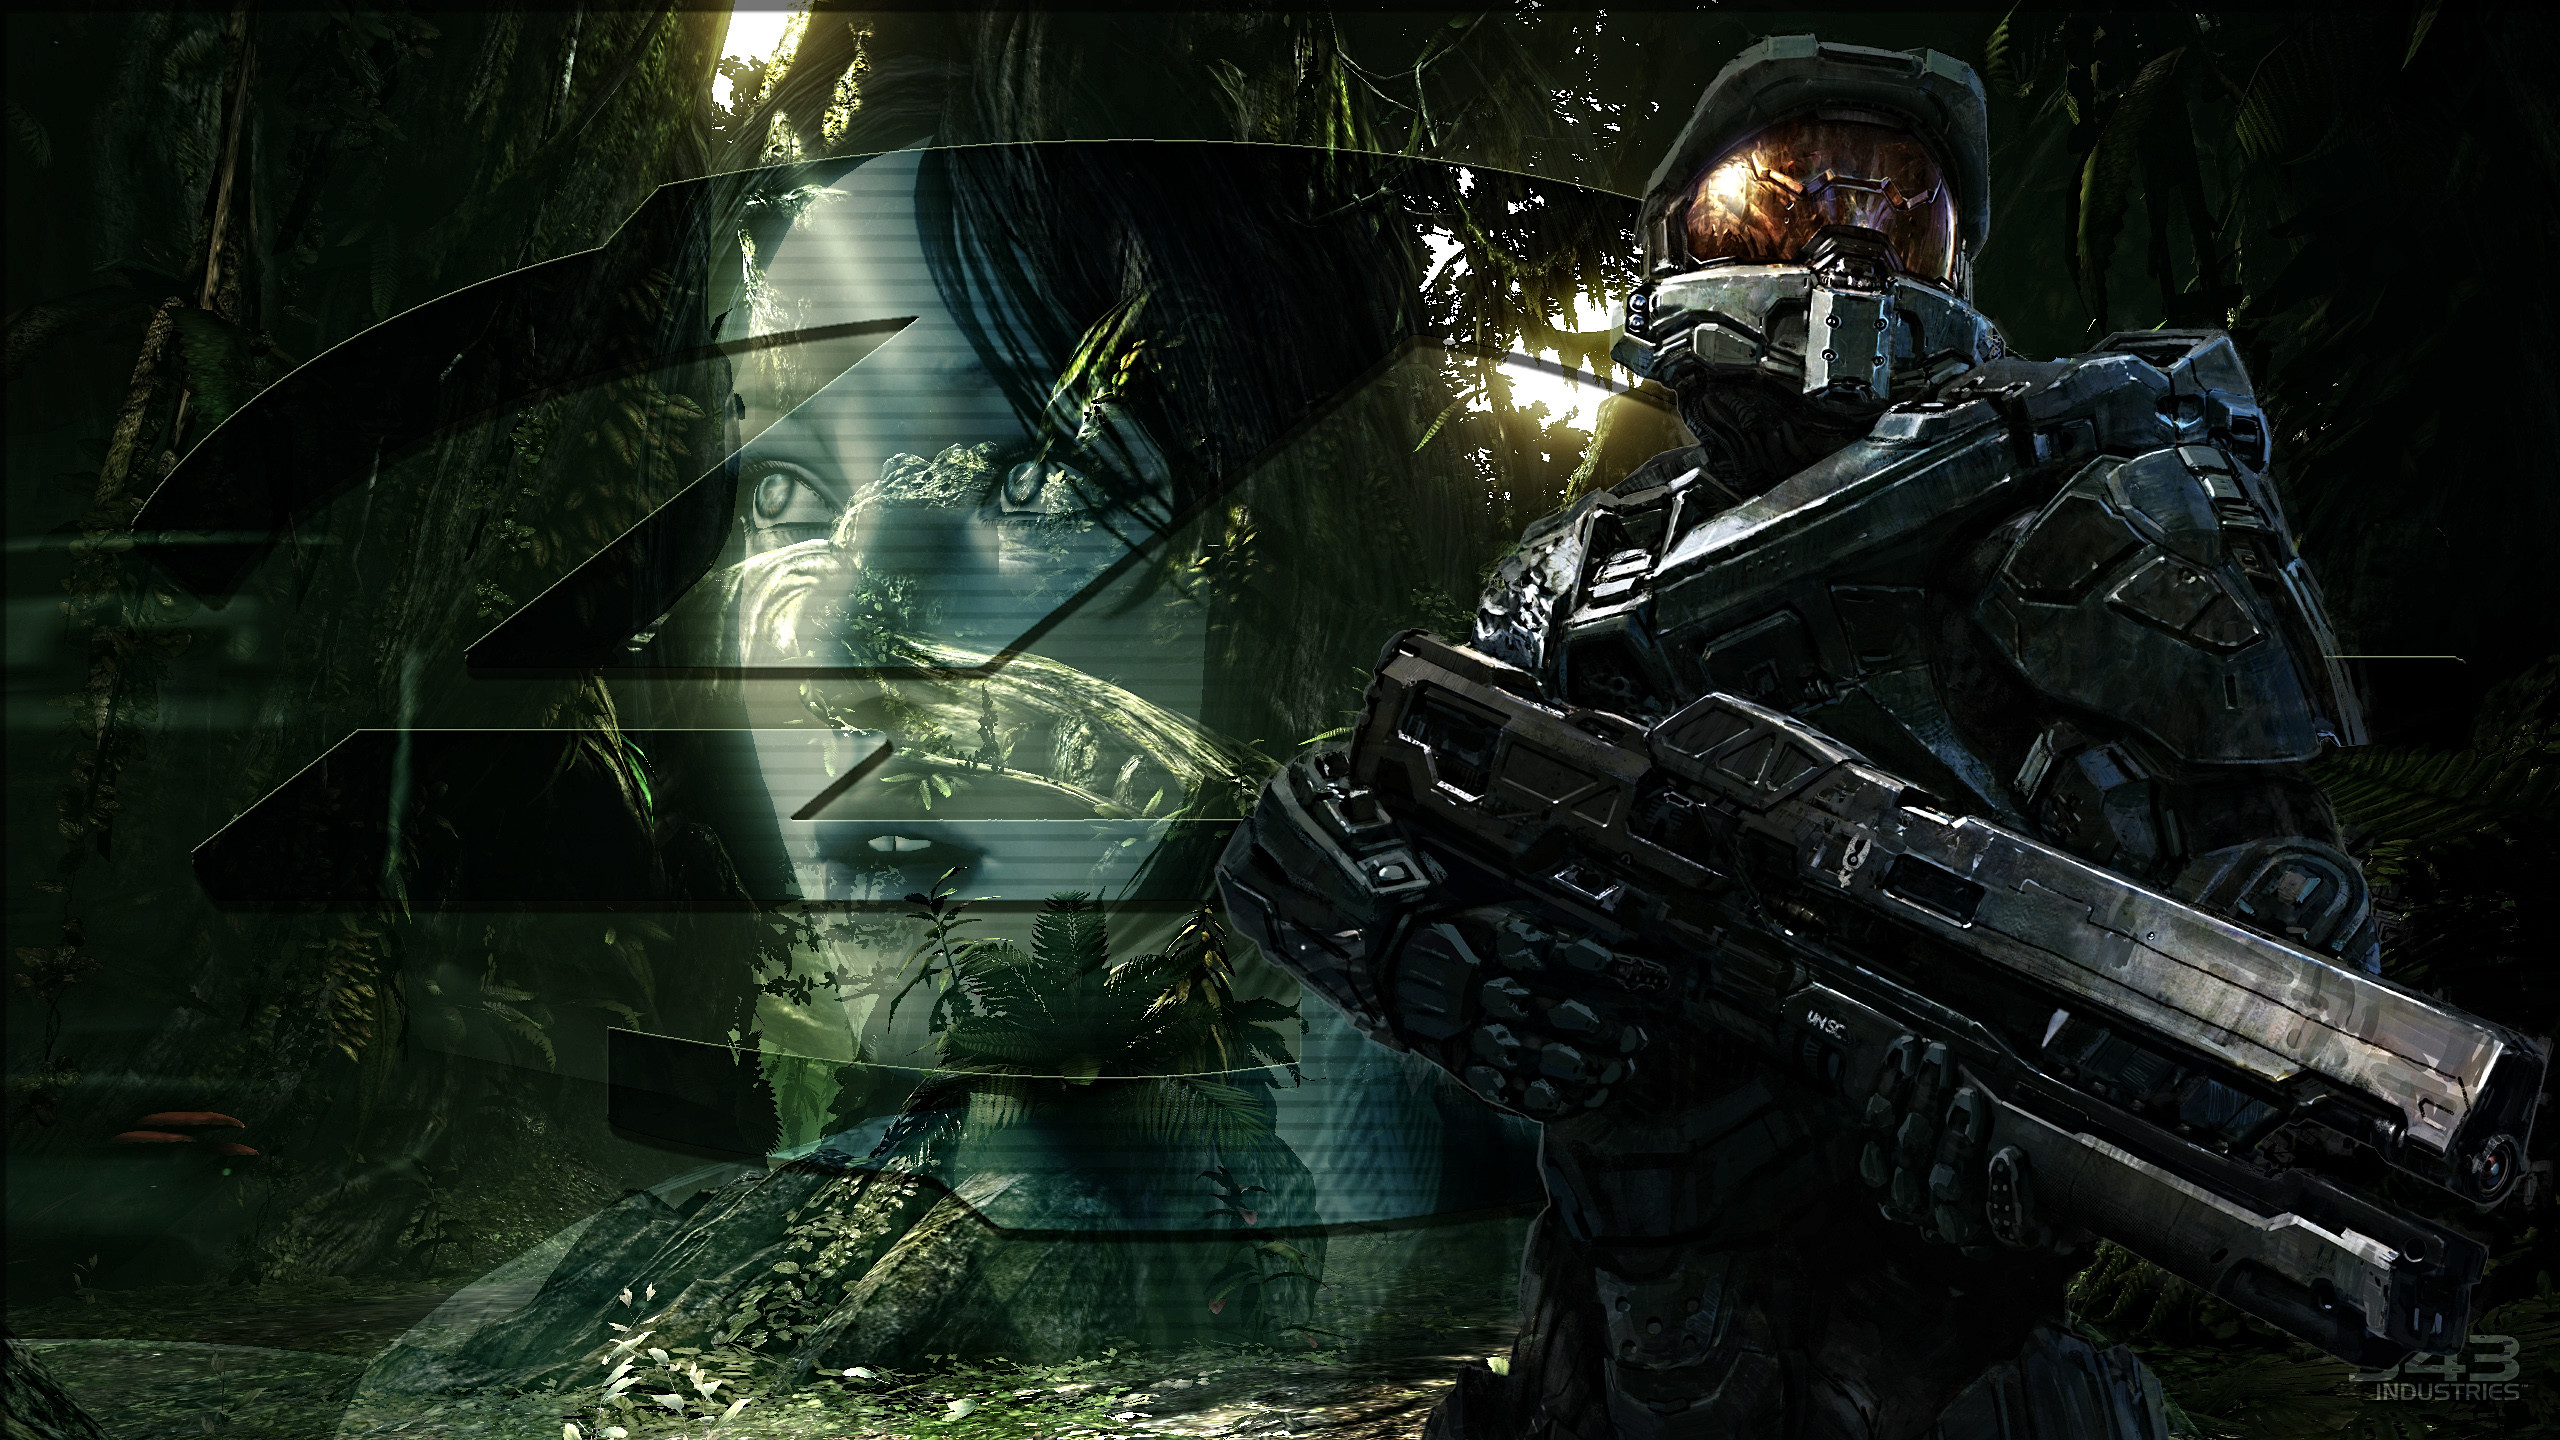 Res: 2560x1440, Halo Master Chief And Arbiter Wallpaper